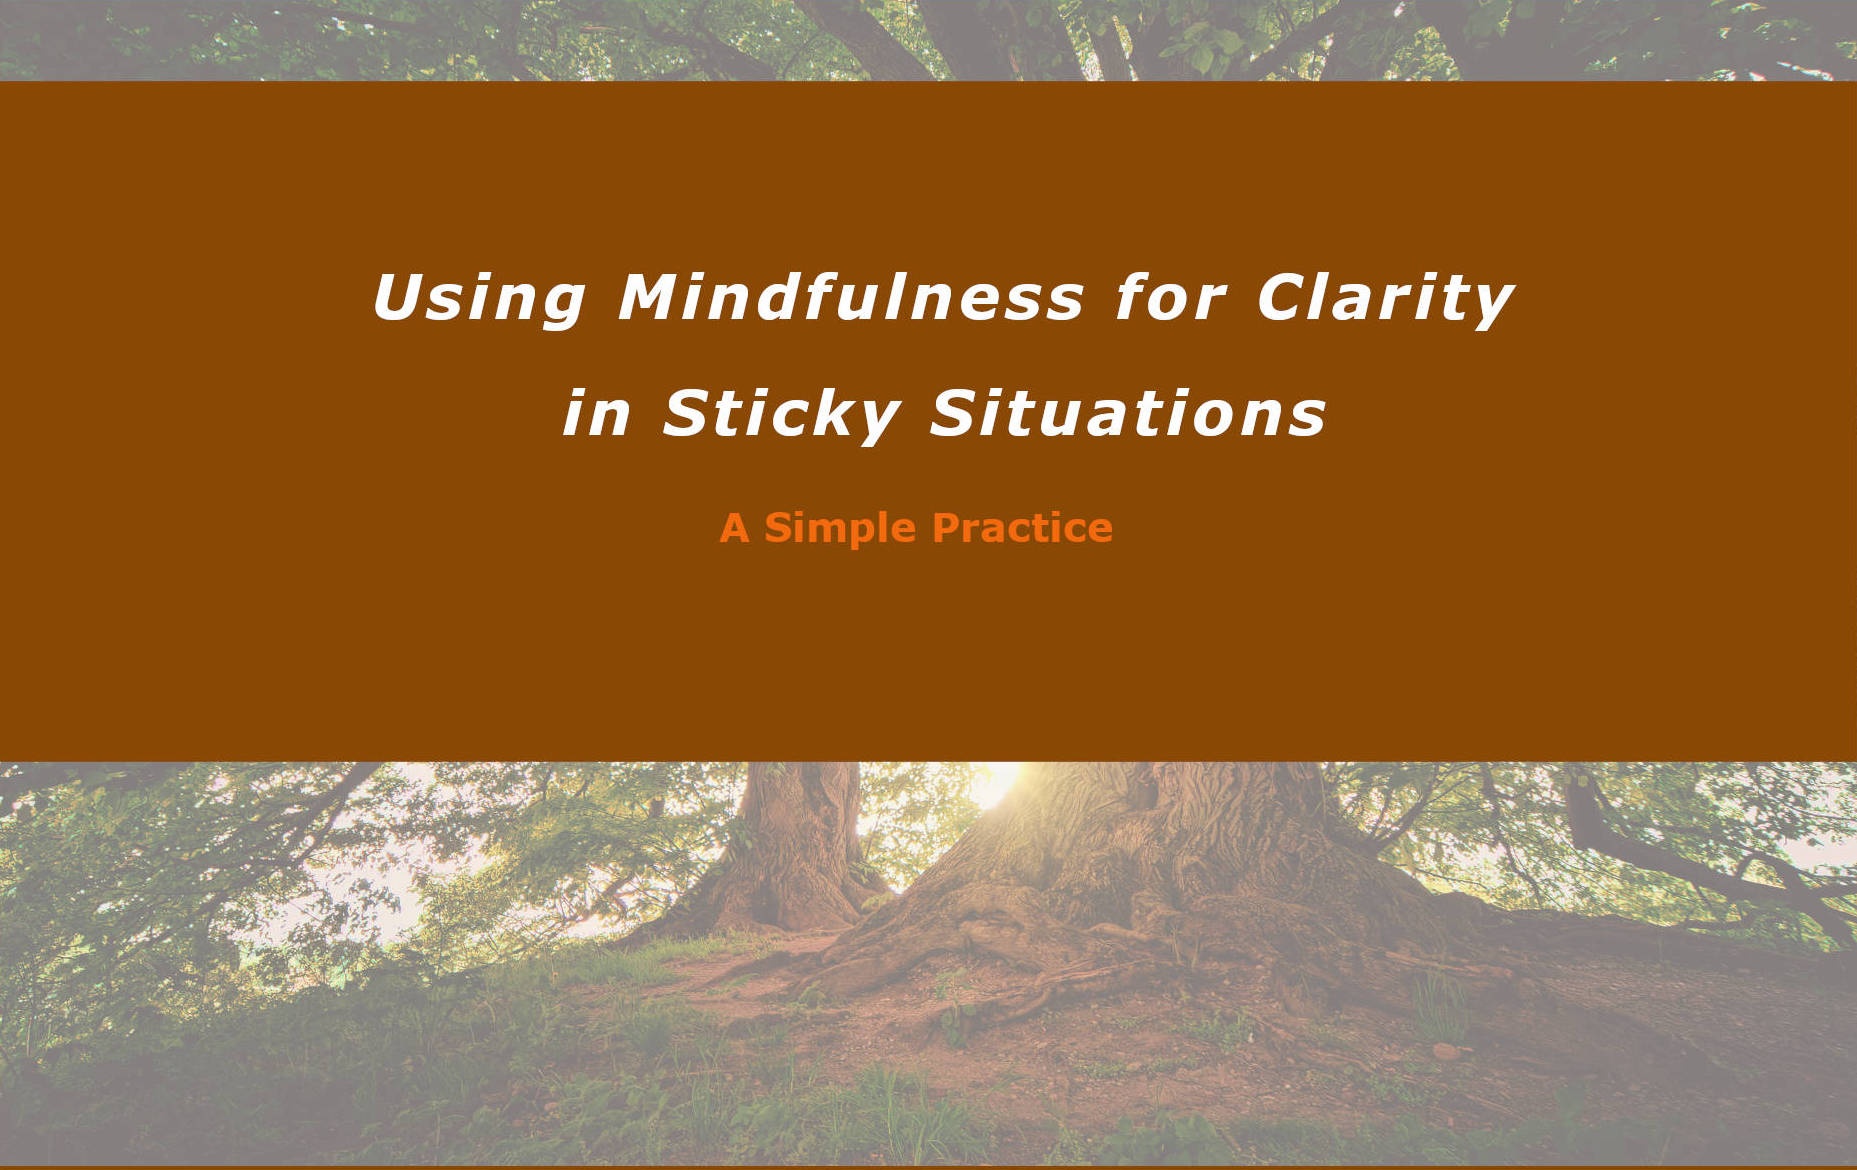 Using Mindfulness for Sticky Situations